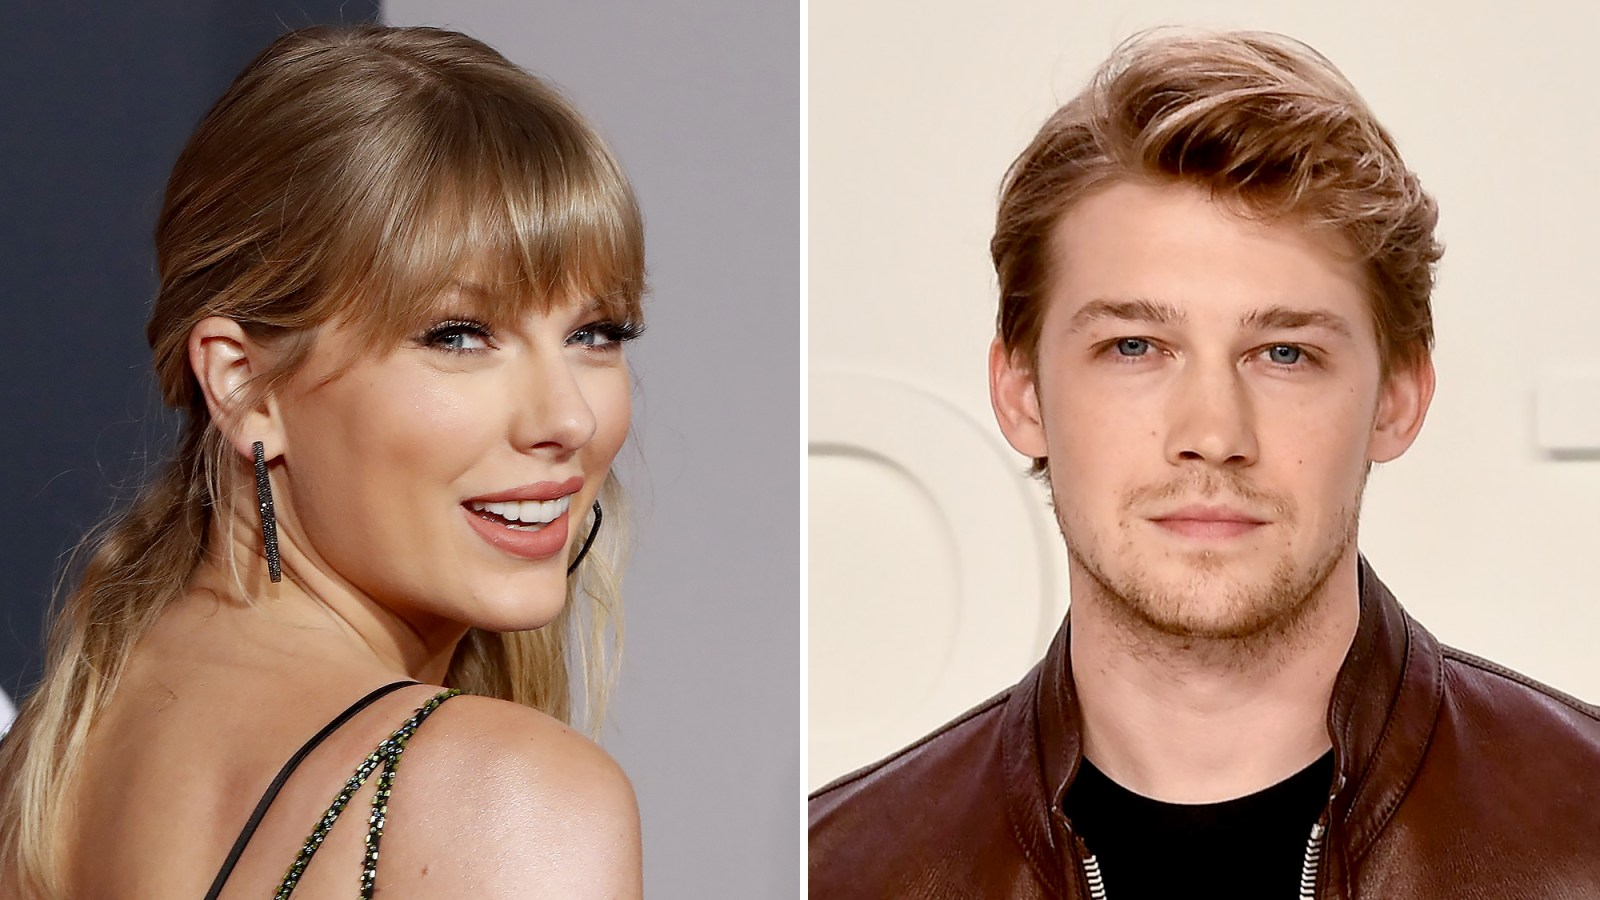 Taylor Swift Joe Alwyn Have Talked About Their Future And Marriage